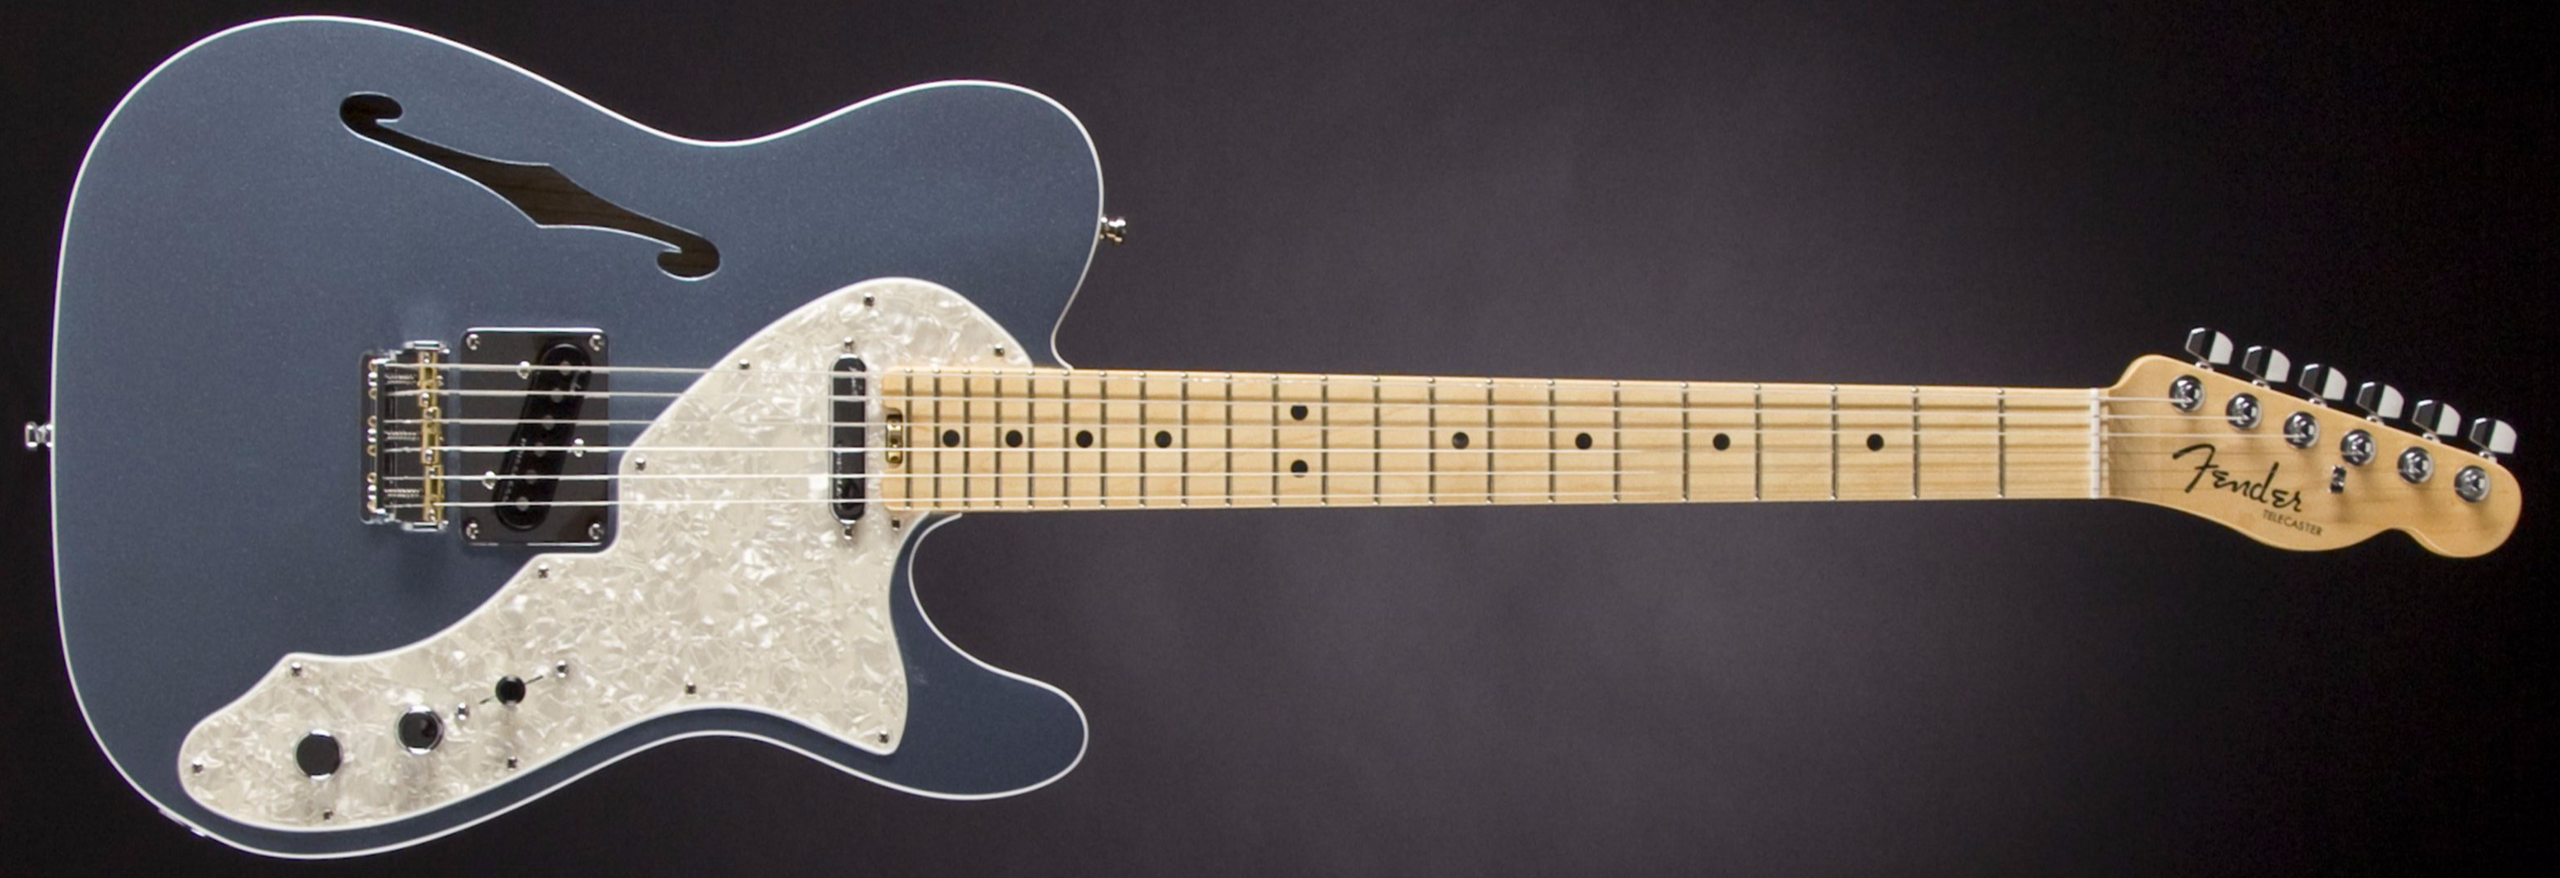 FENDER American Elite Telecaster Thinline MN Mystic Icy Blue